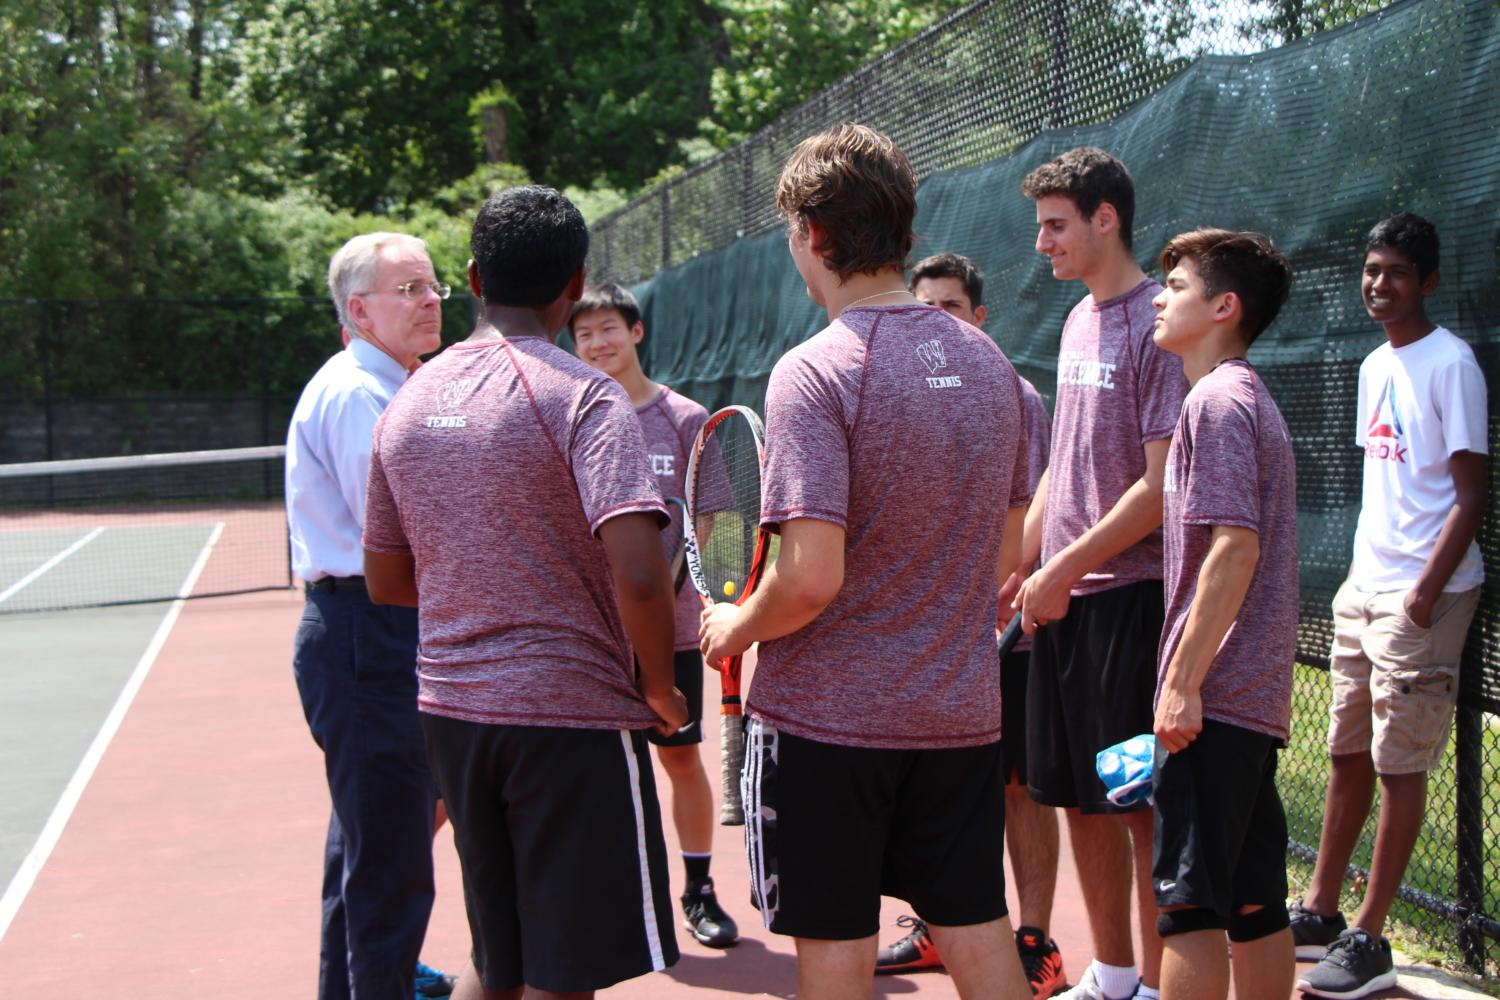 The Boys tennis team went undefeated during the regular season with a 19-0 record.  Coach Bruce Keogh speaks to his team members.